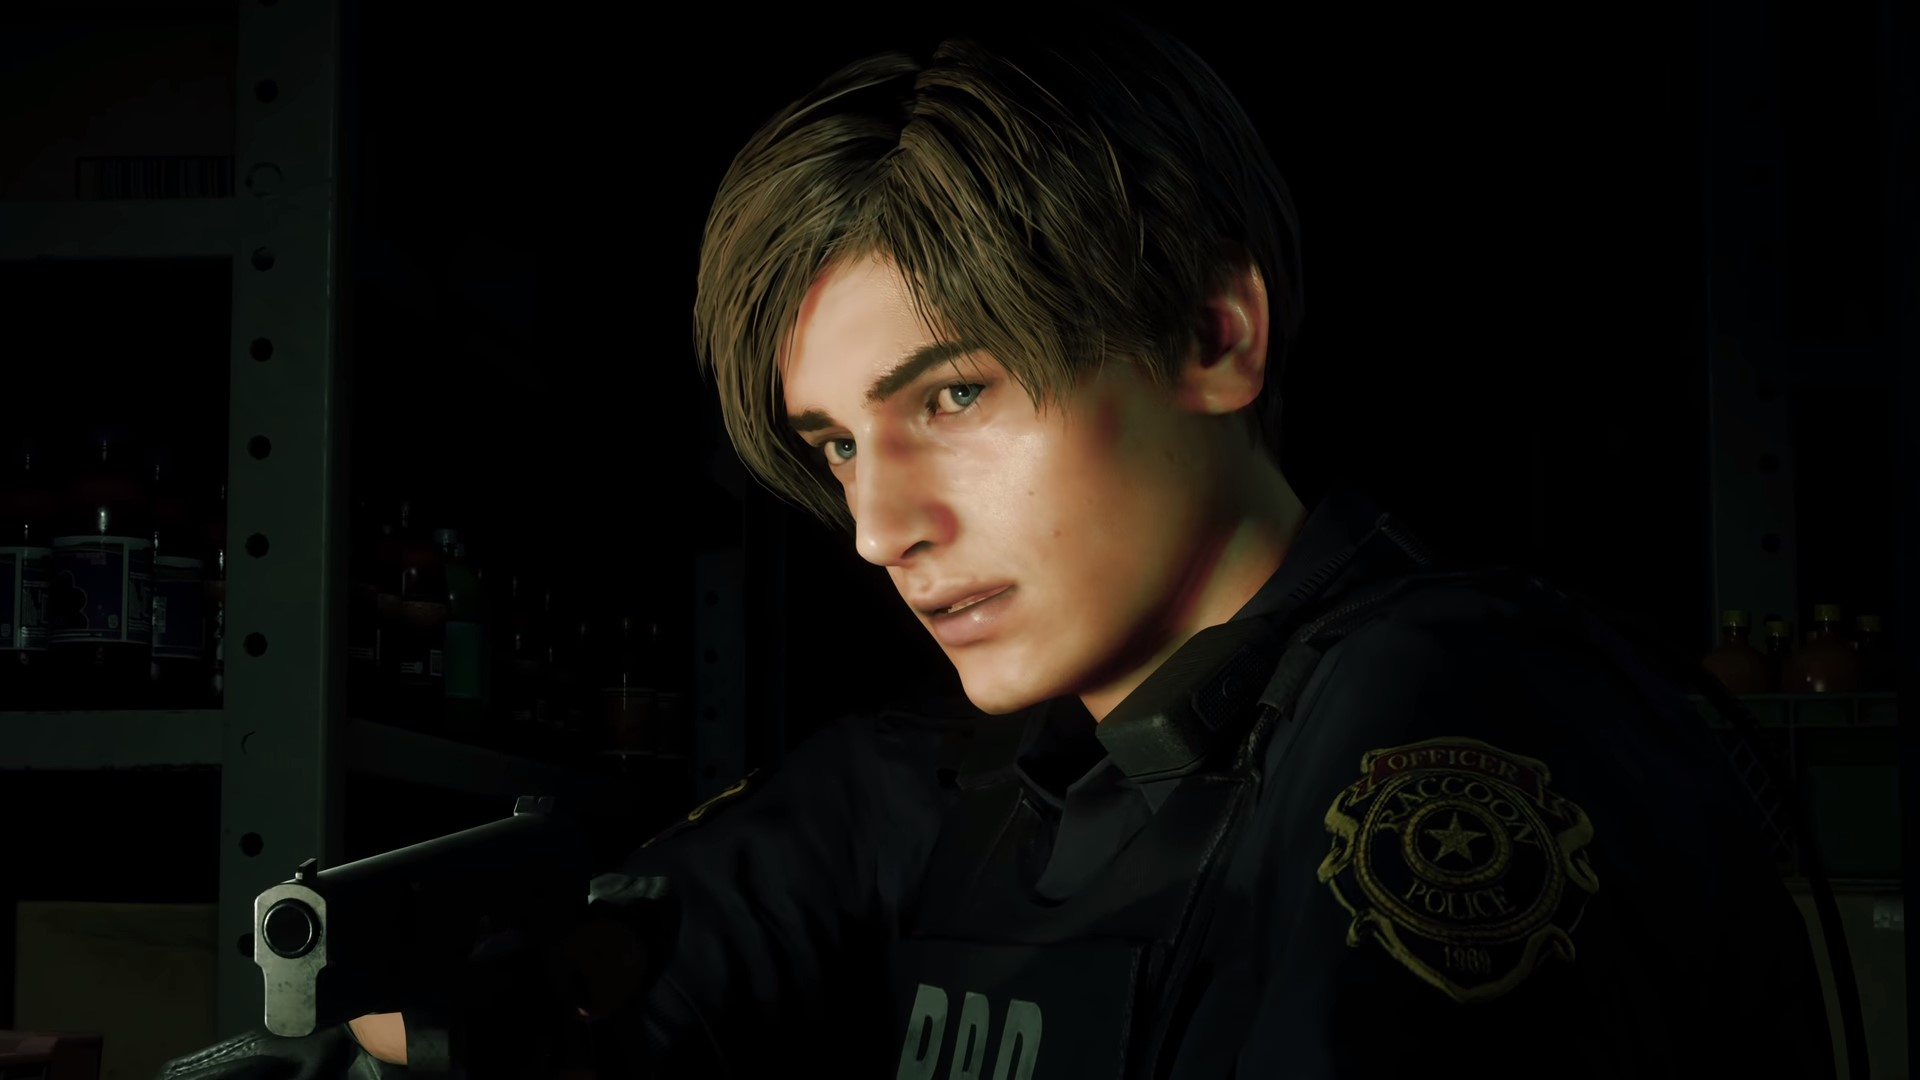 Resident Evil 2 Remake S Subtle Use Of Characterization Is One Of